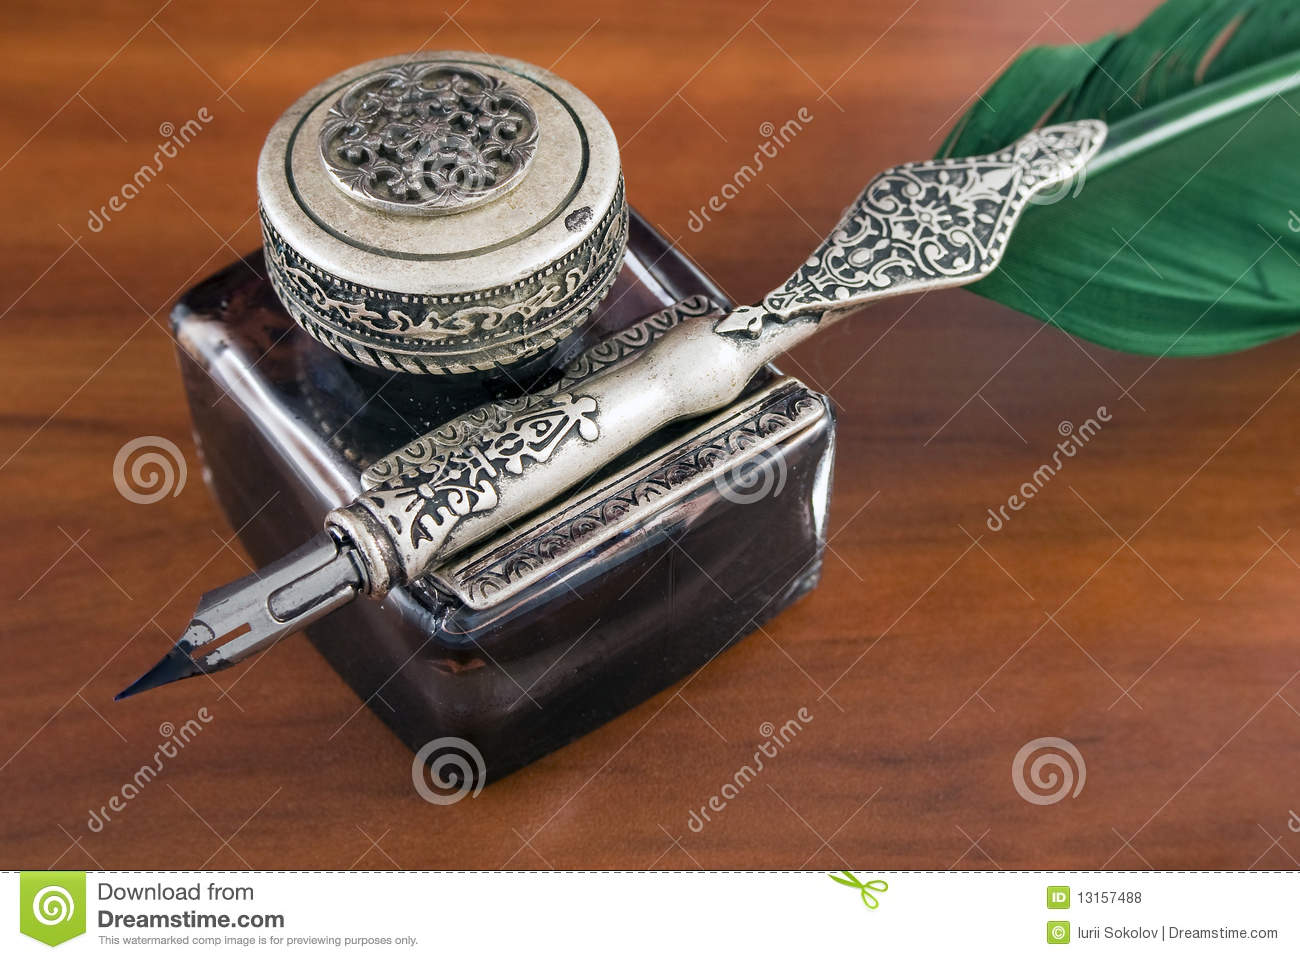 Inkwell and quill stock photo. Image of script, manuscript ...Quill And Inkwell Image